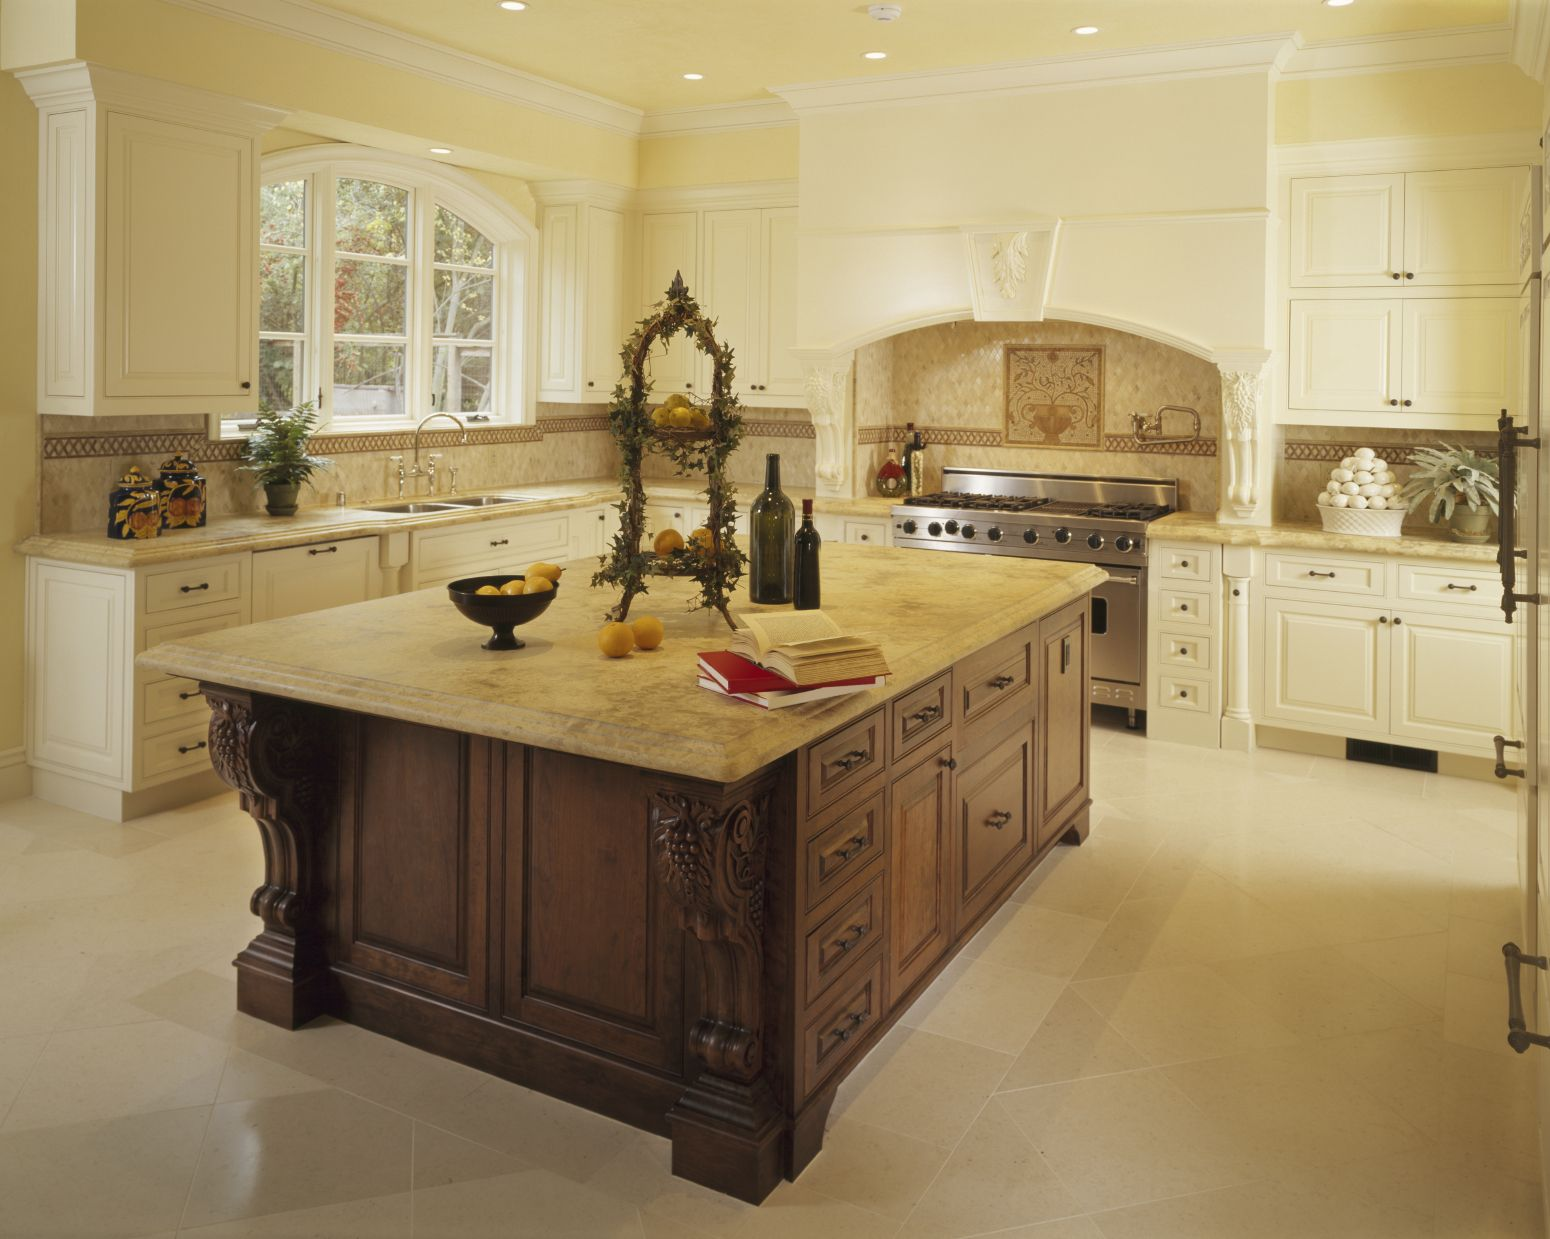 30 Custom Luxury Kitchen Designs that Cost More than $100,000 ...